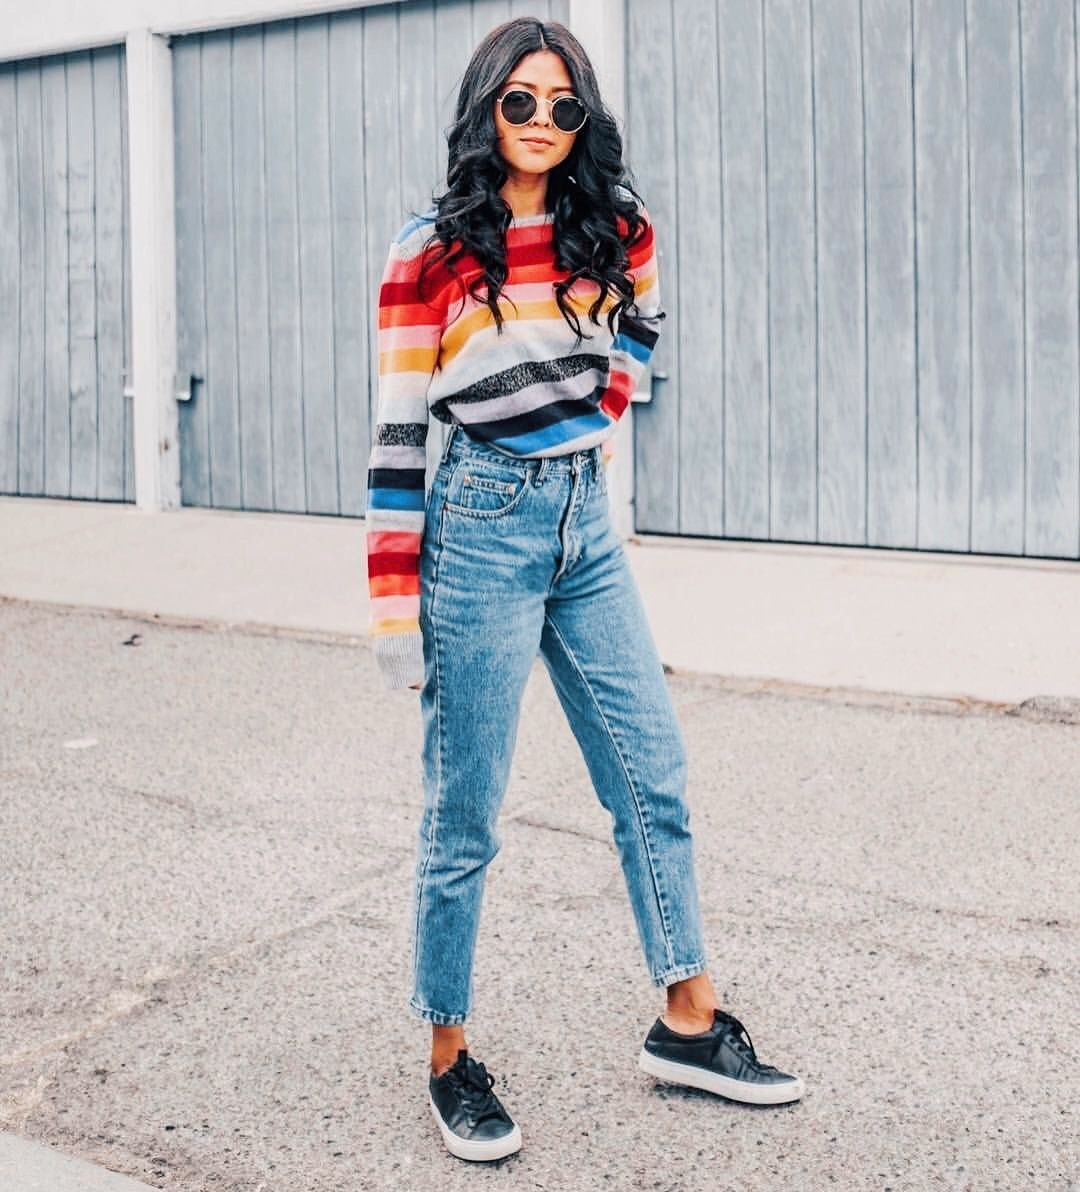 Pinterest Pinterest Pinterest | @mbg2019 | ☼ ☾ | Style | Pinterest | Clothes, Clothing 42a9a0